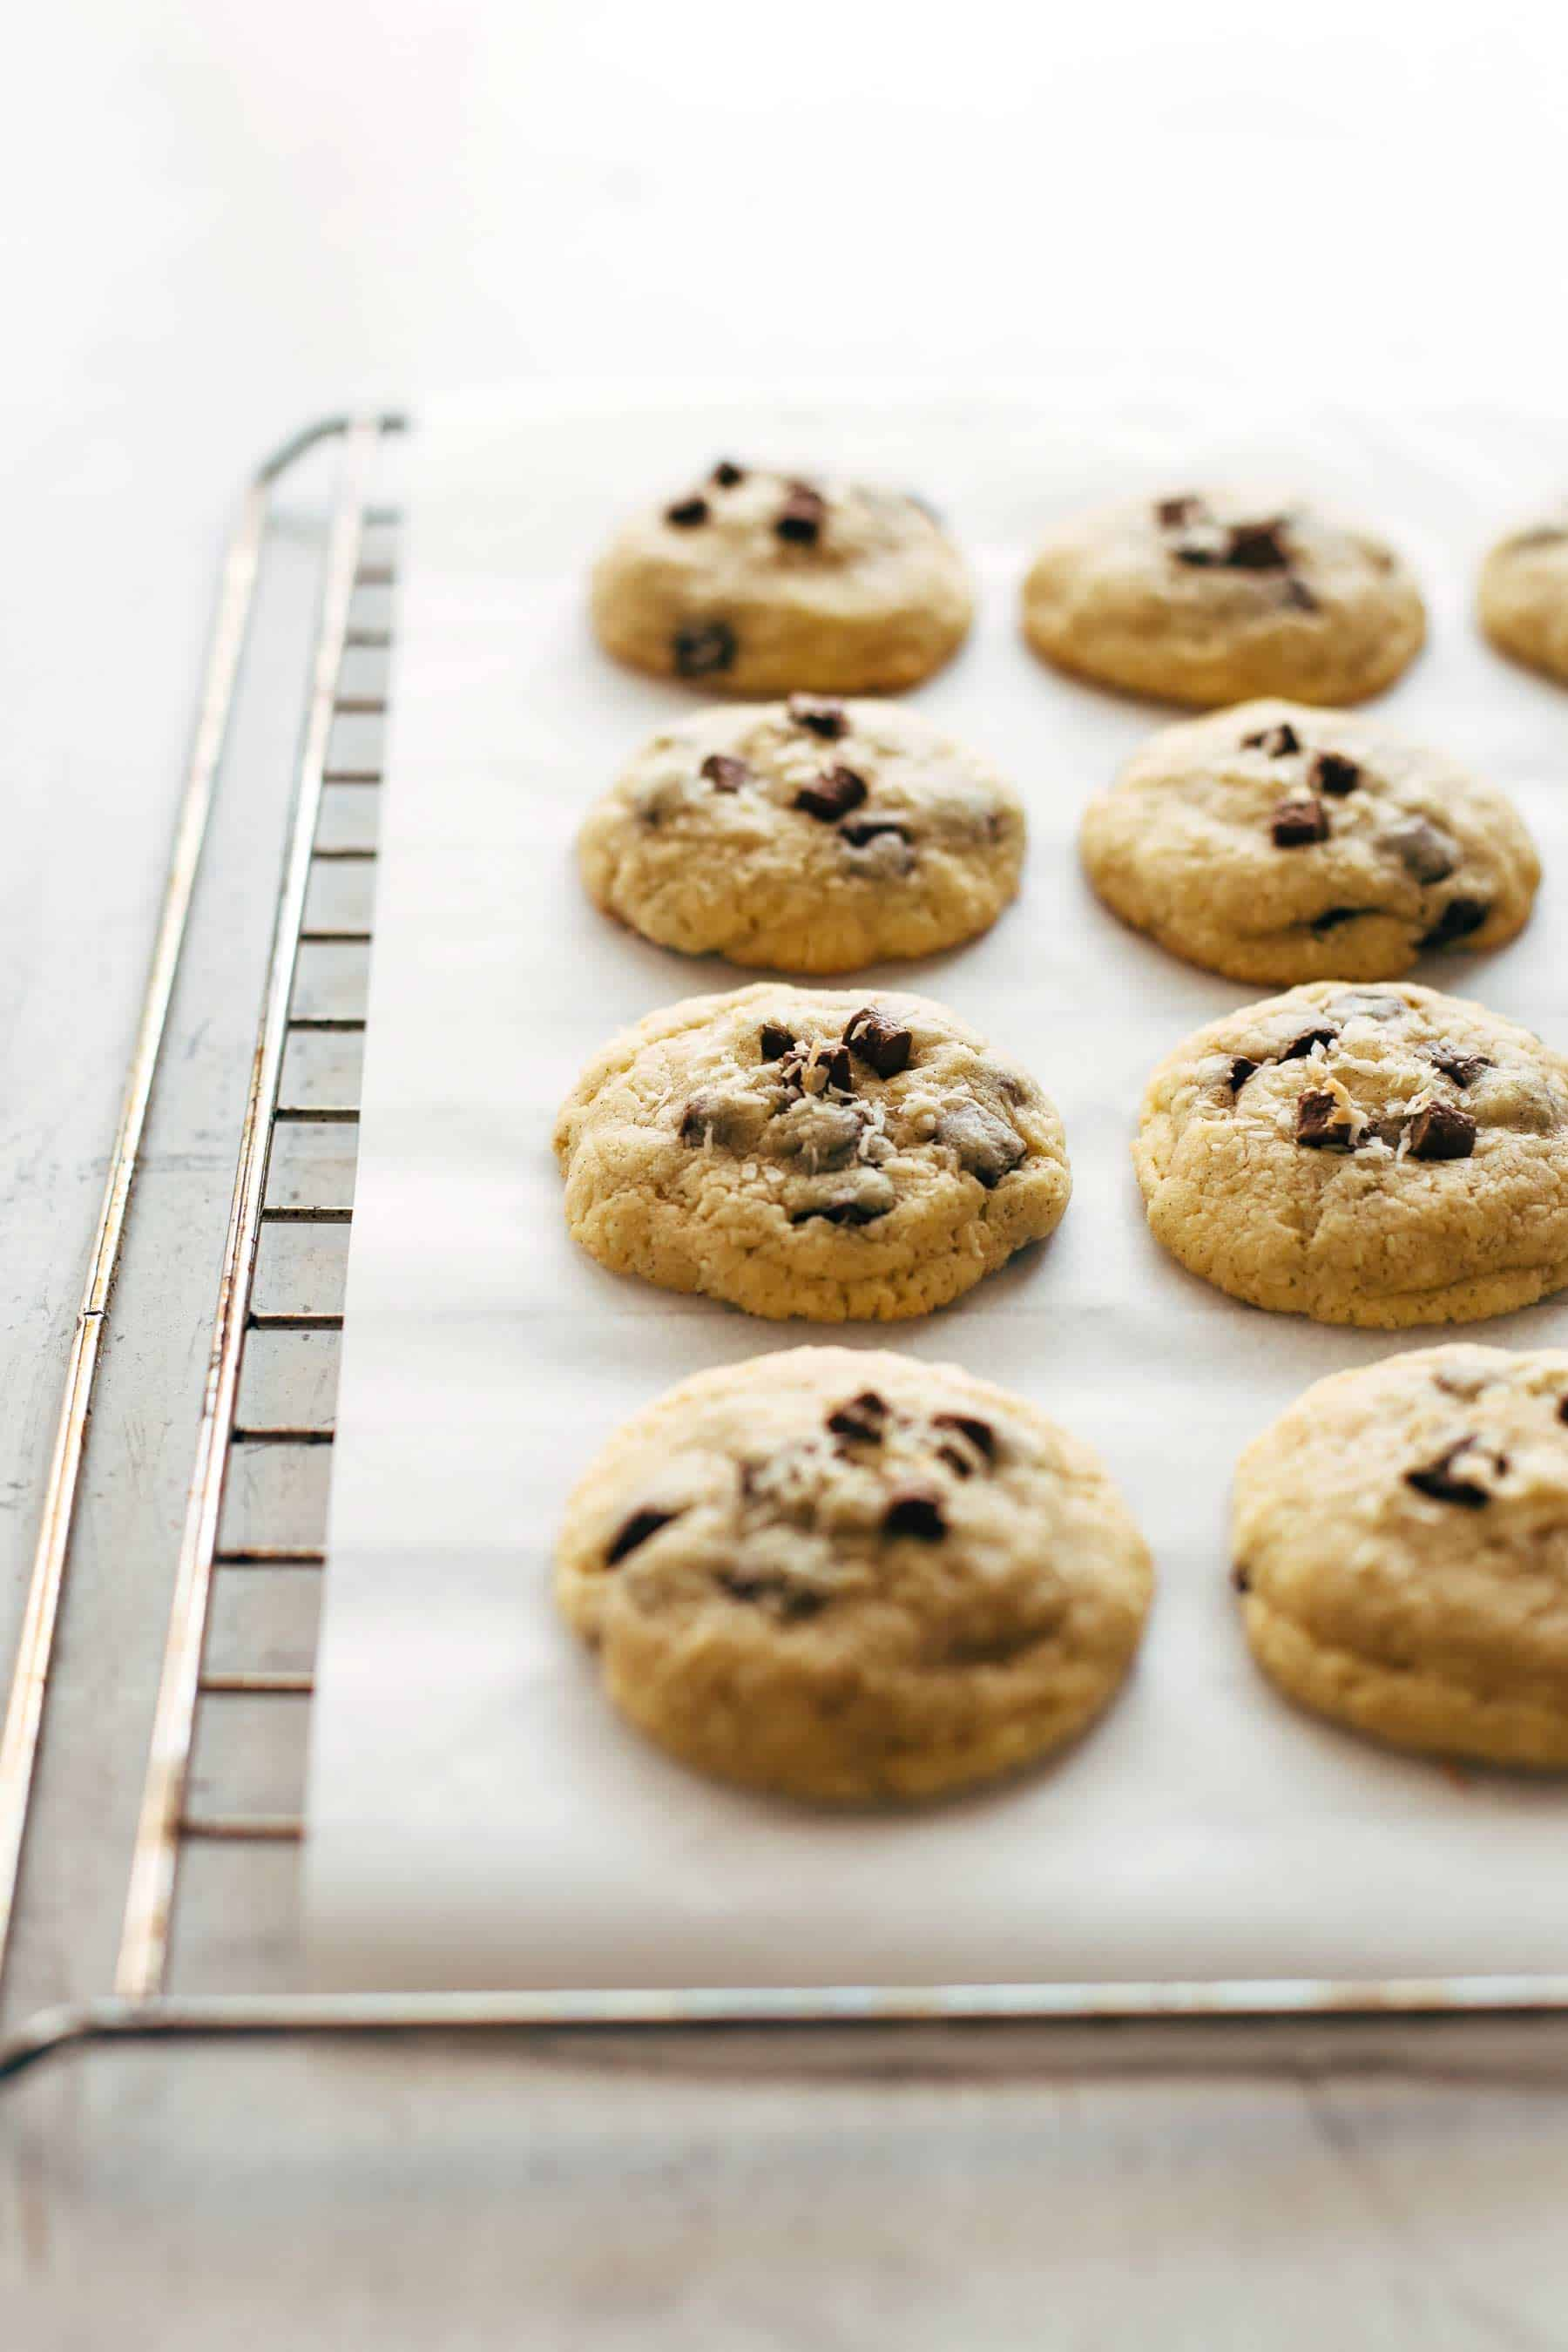 Coconut Caramel Chocolate Chip Cookies